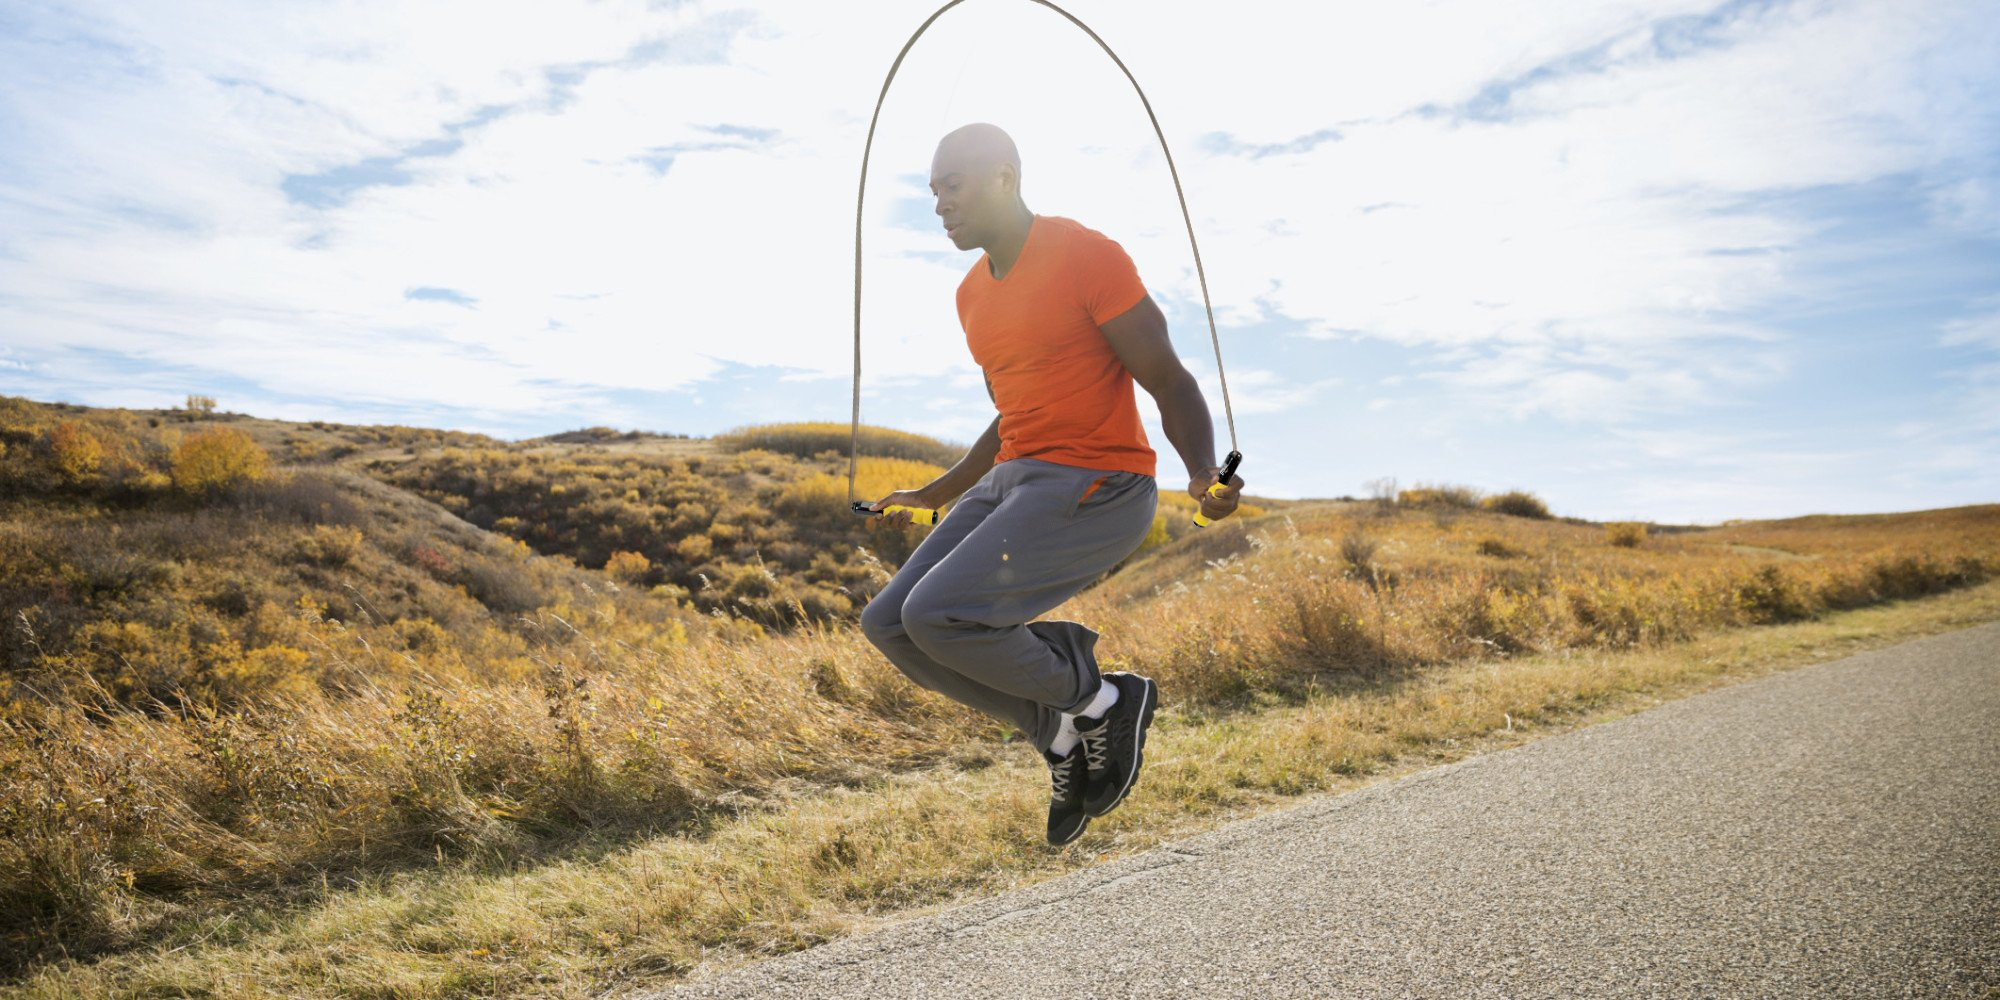 Everlast Jump Rope - Premium Quality - Speed & Adjustable - Cardio Jumping for Men, Women, and Children of All Heights and Skill Levels Compatible w/Smart Fit Bluetooth App to See Your Fitness Data.